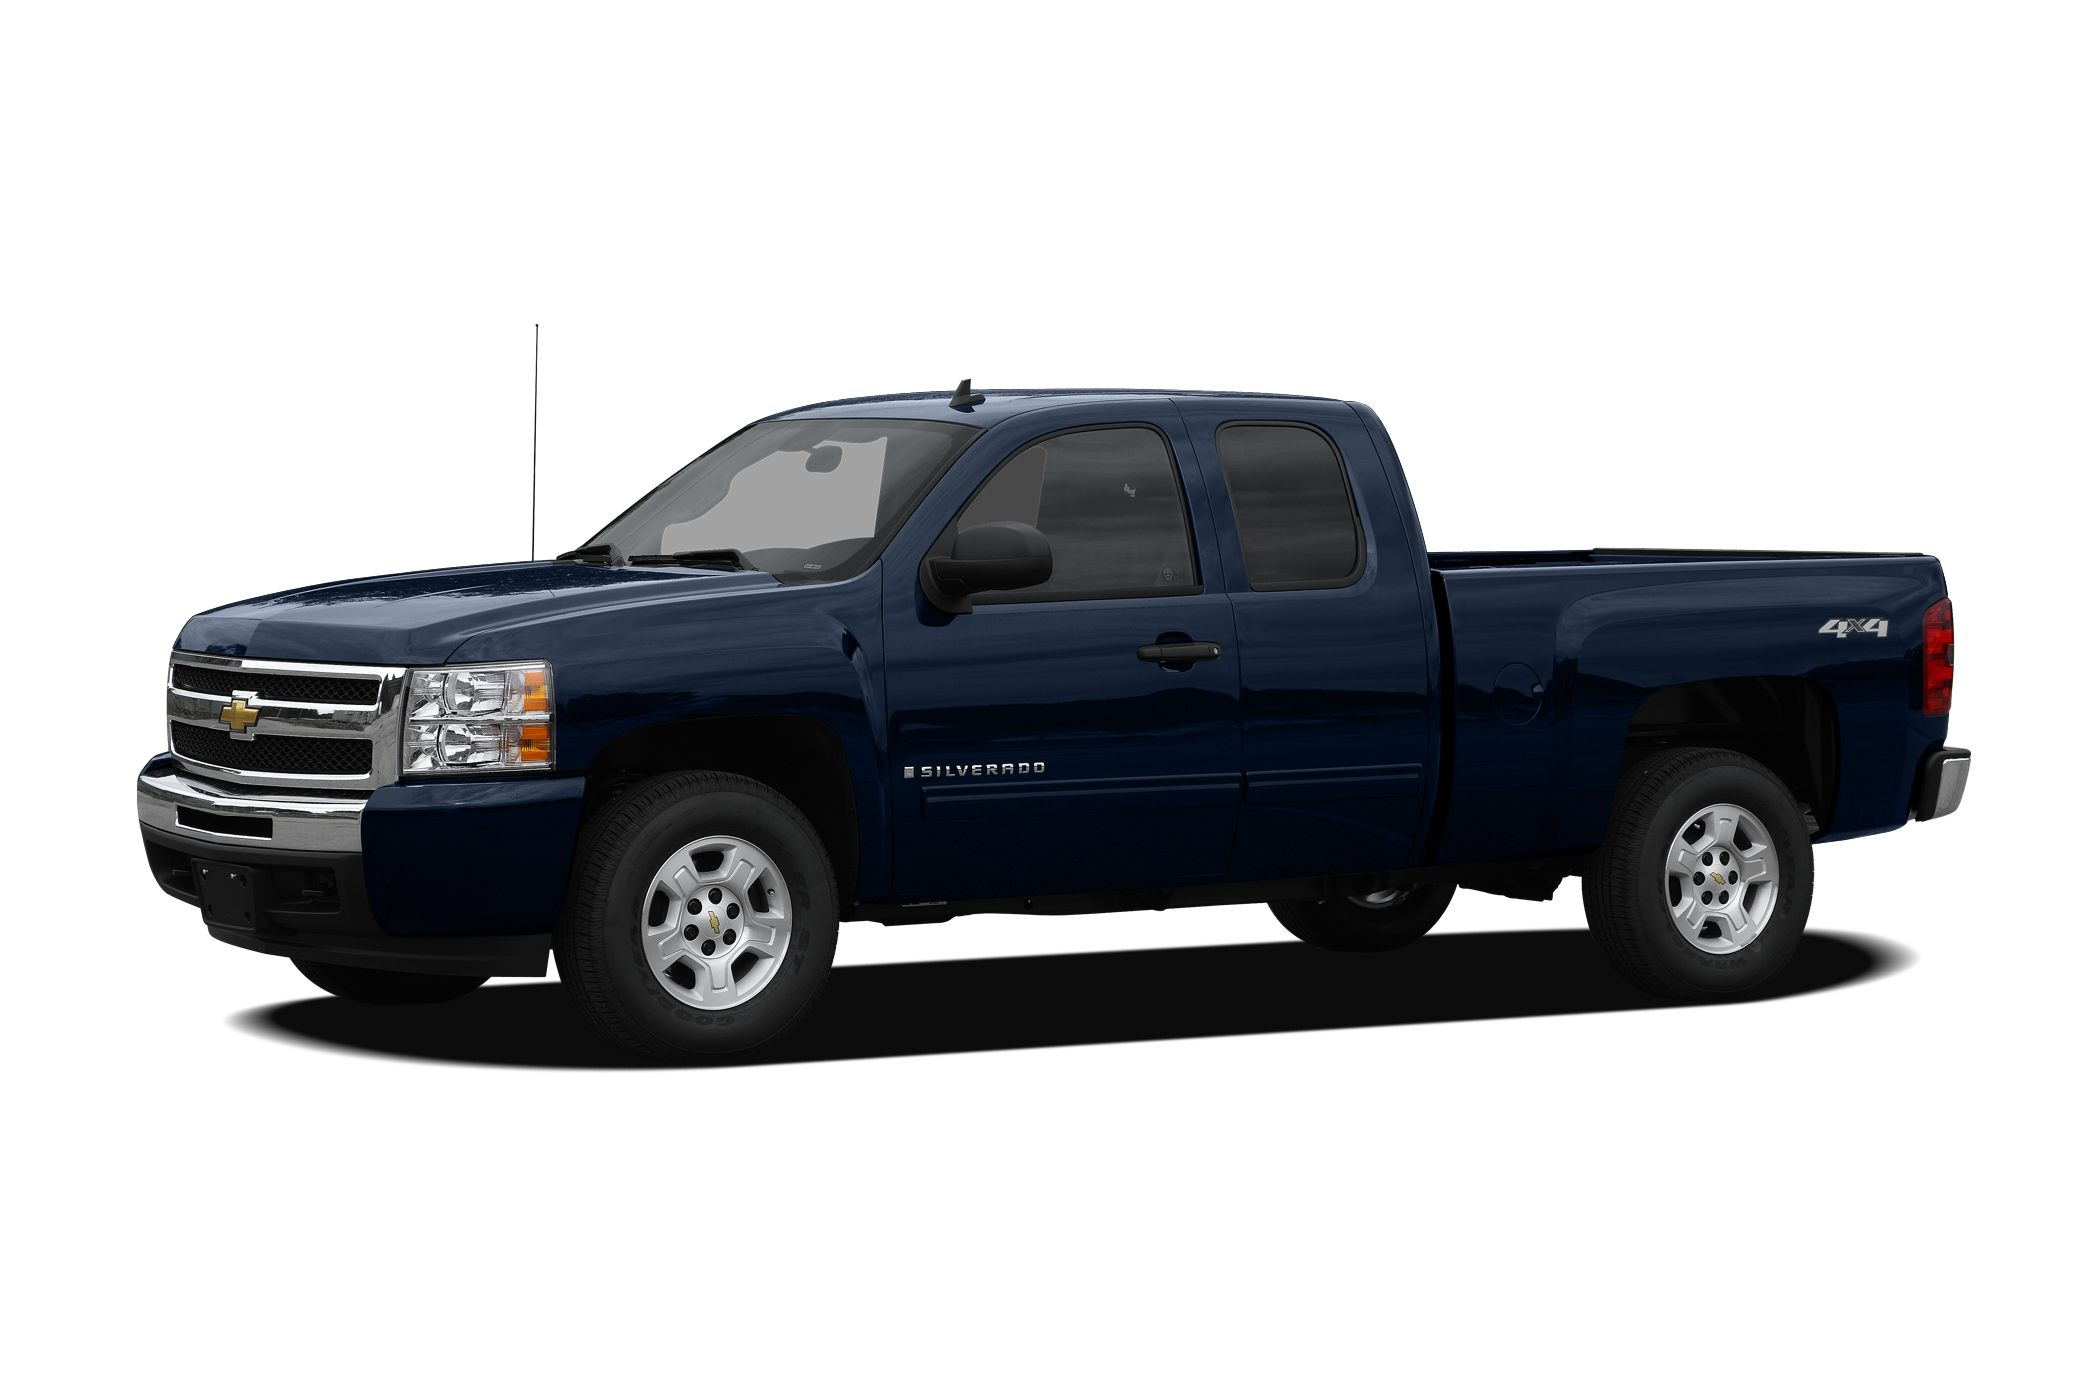 2009 Chevrolet Silverado 1500 LS Extended Cab Extended Cab Pickup for sale in Jesup for $16,889 with 95,495 miles